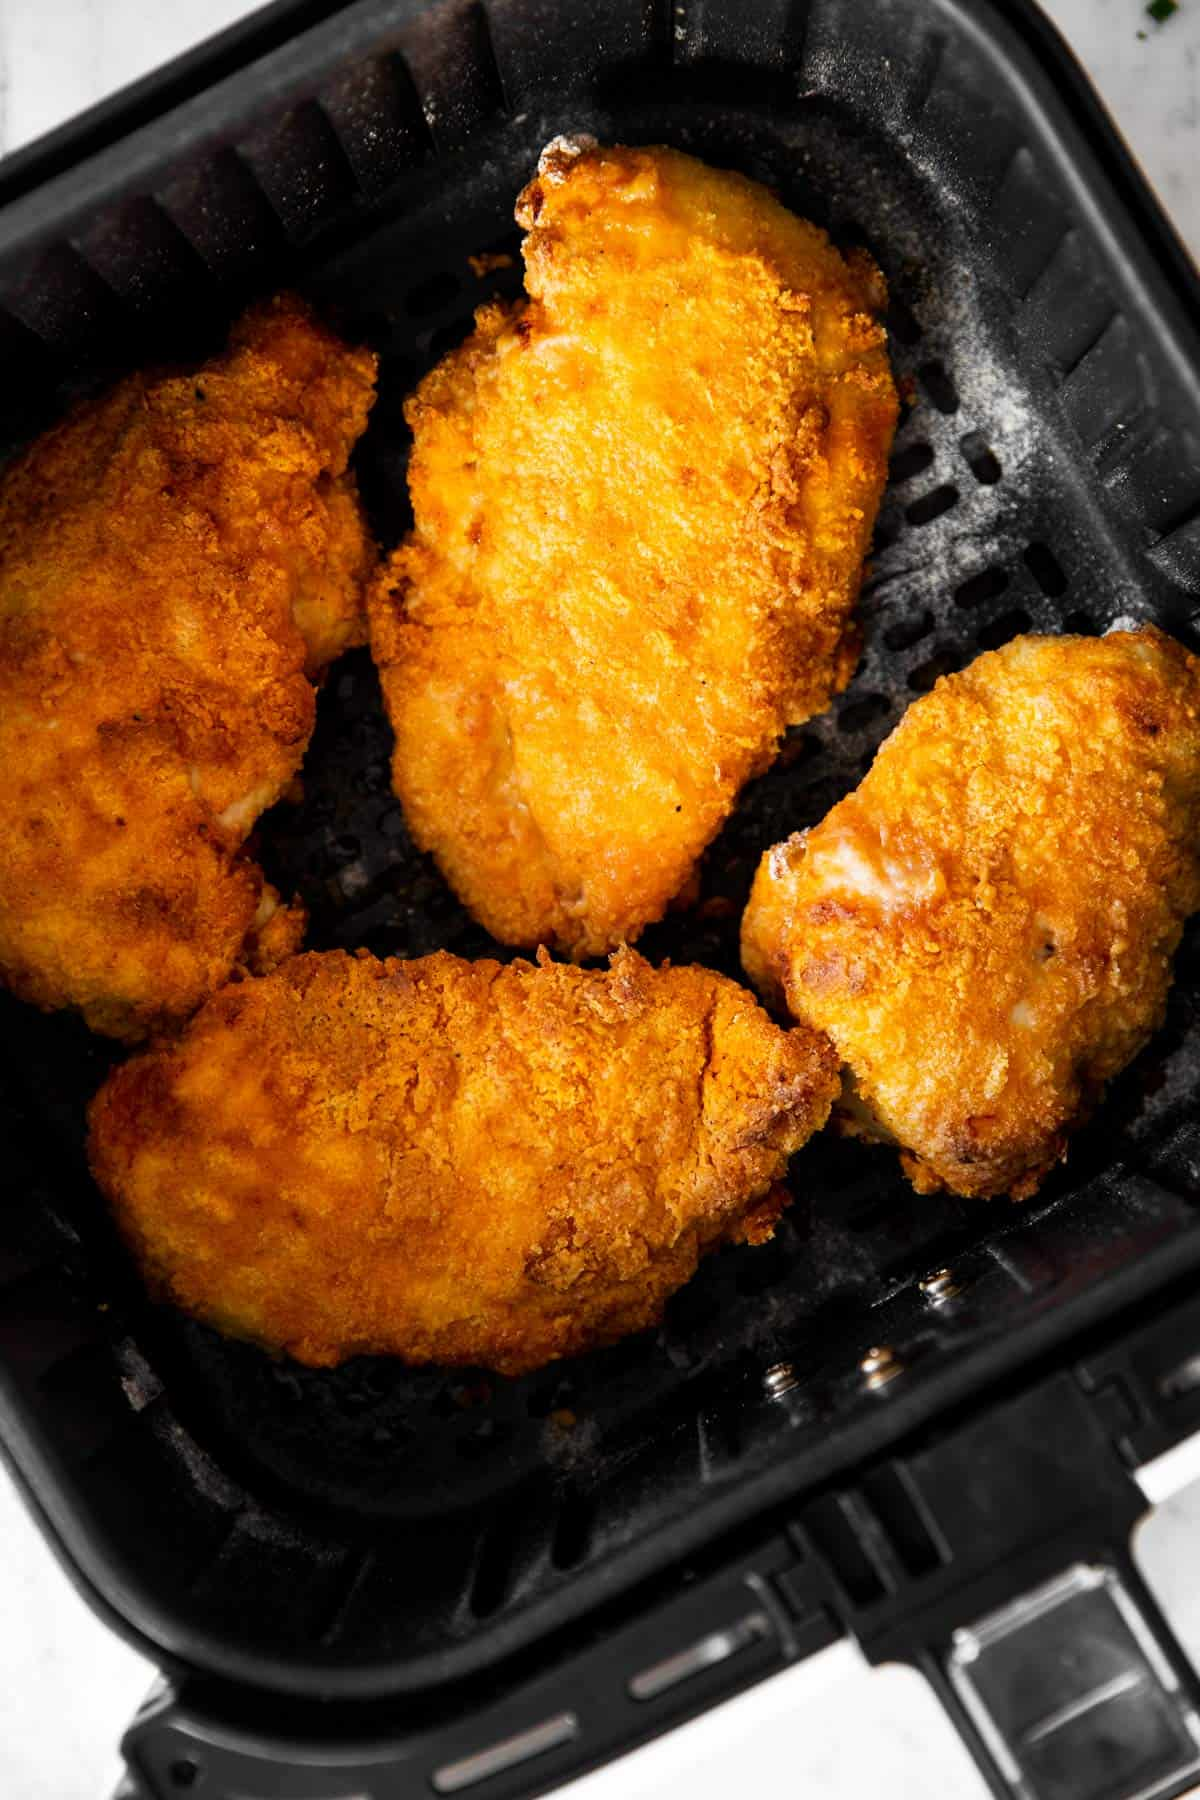 overhead view of fried chicken in air fryer basket